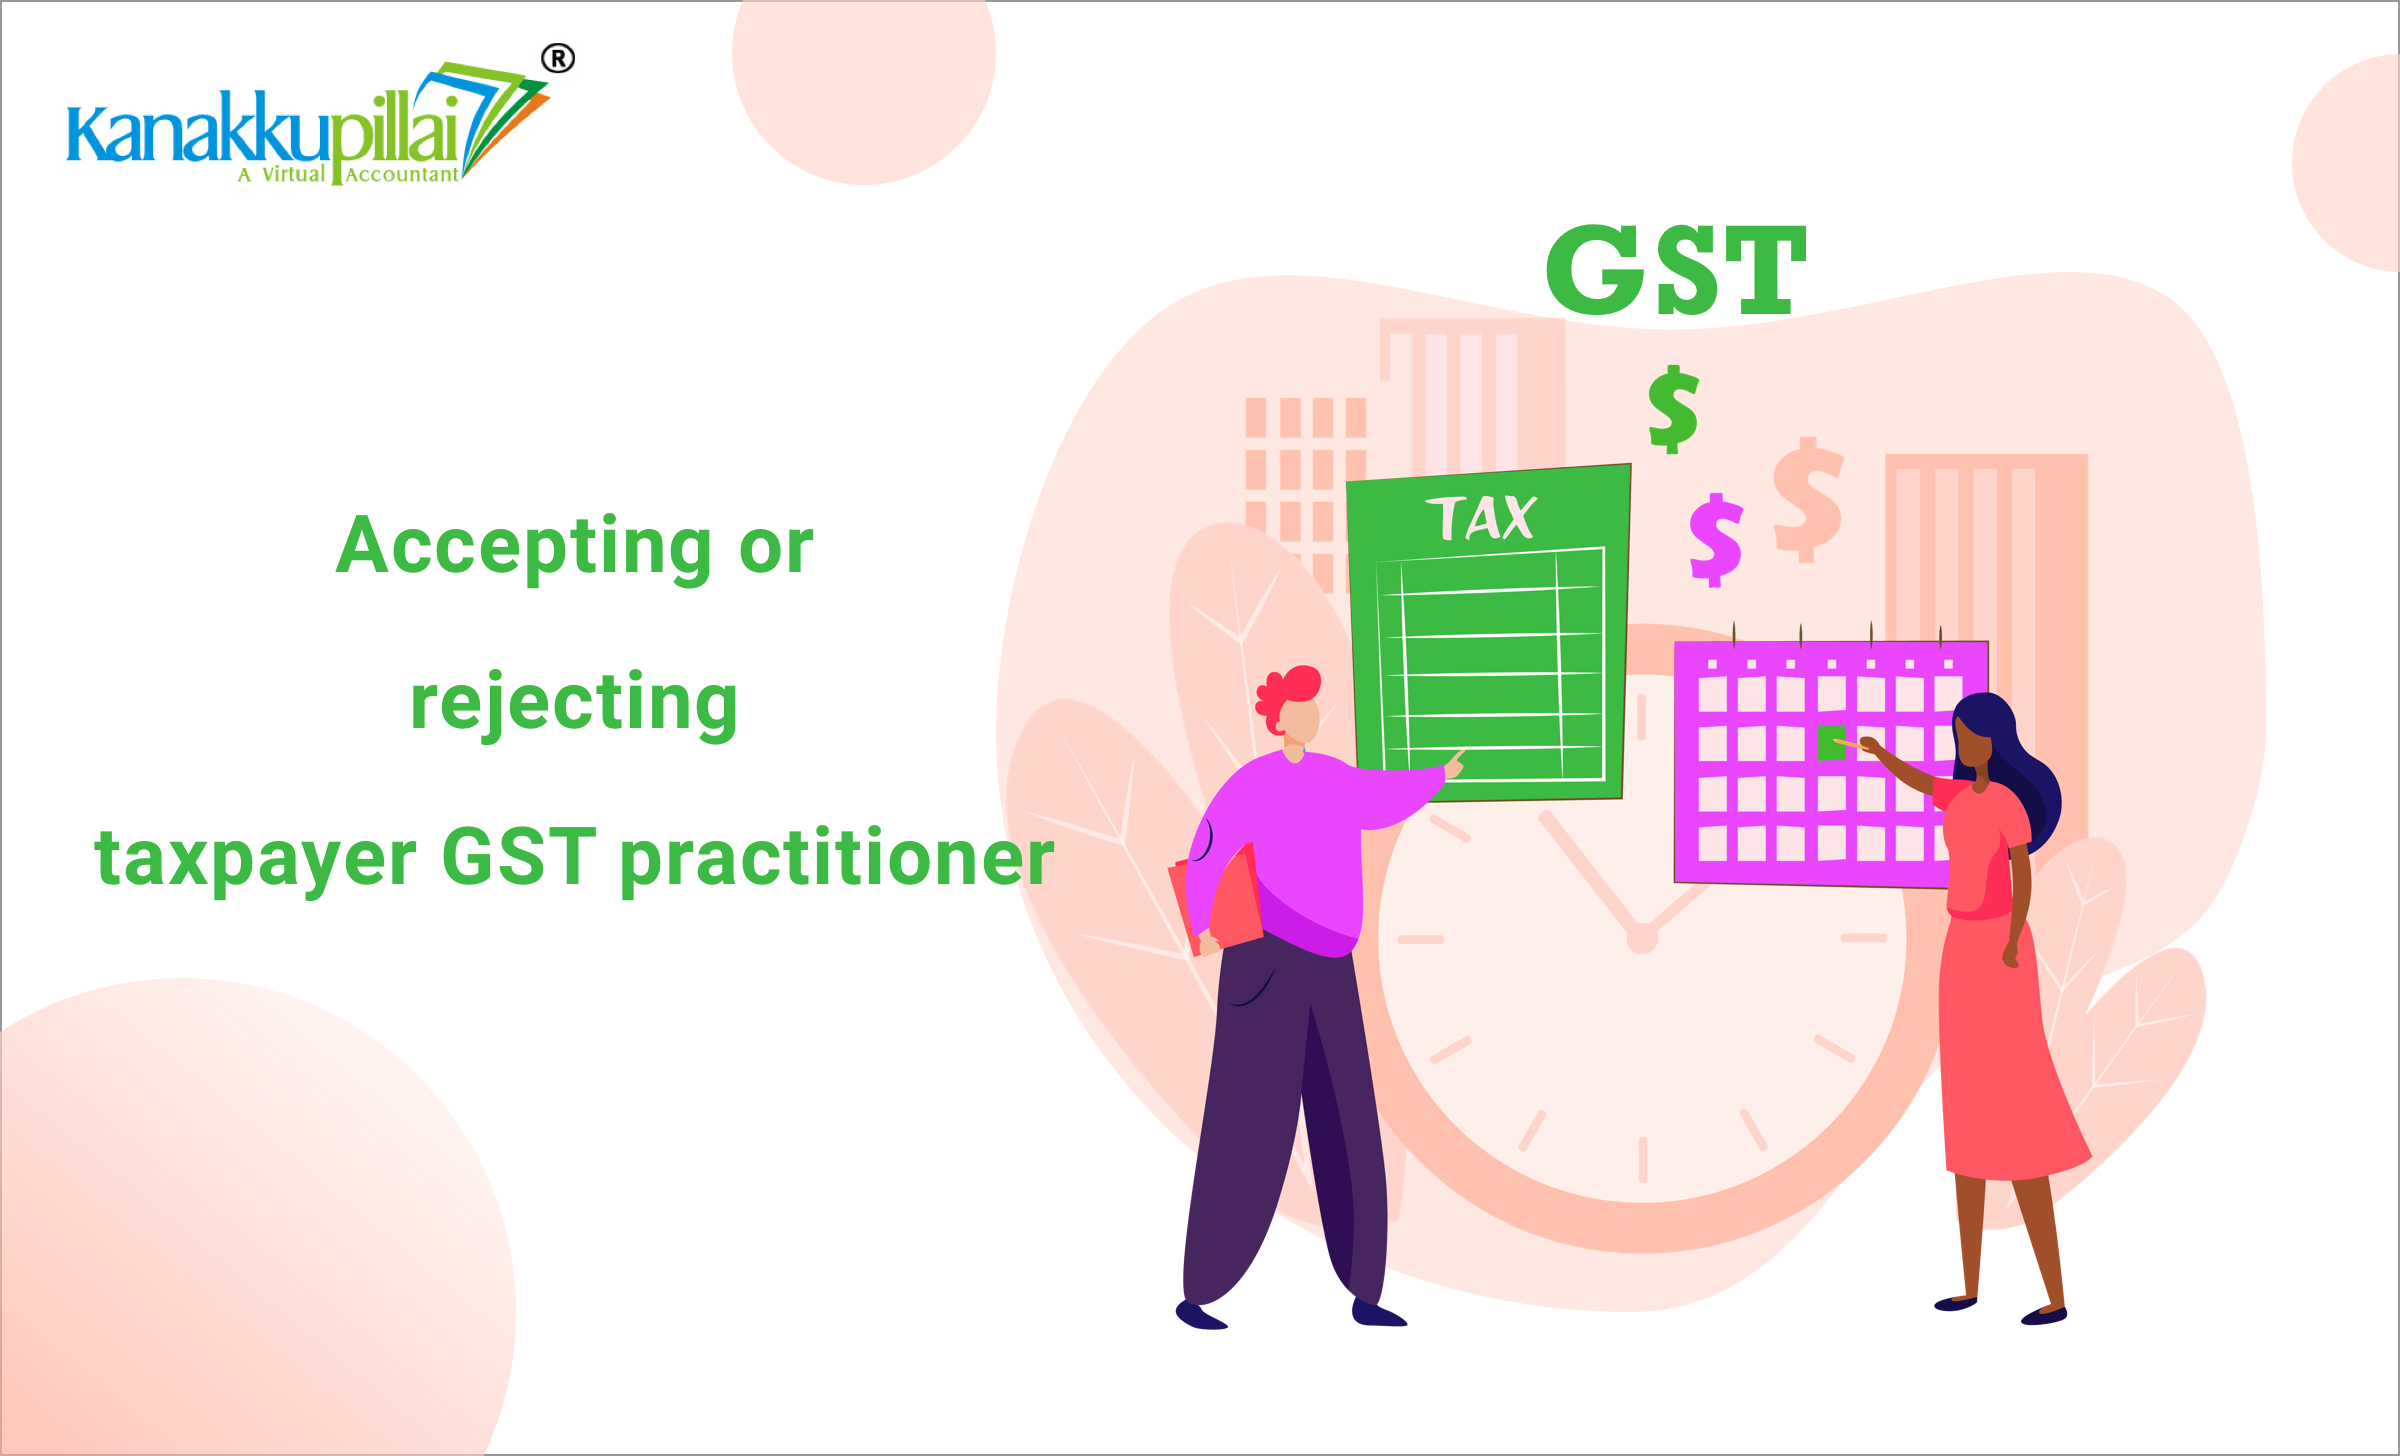 Accepting-or-Rejecting-a-Taxpayer-GST-practitioner